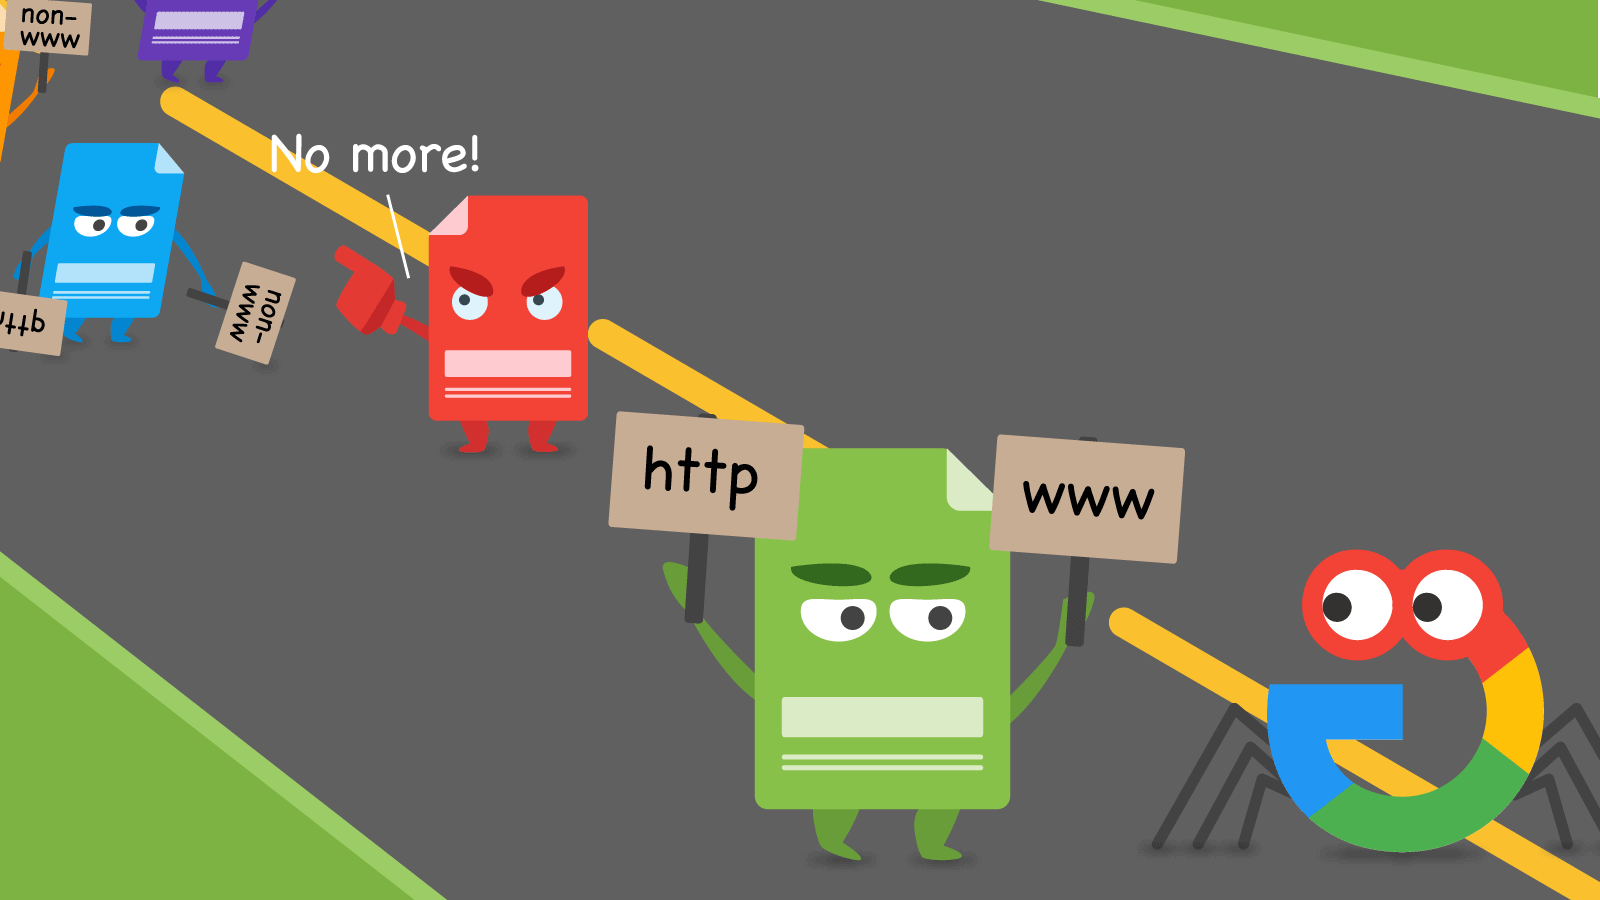 How to redirect to or away from www and http(s)